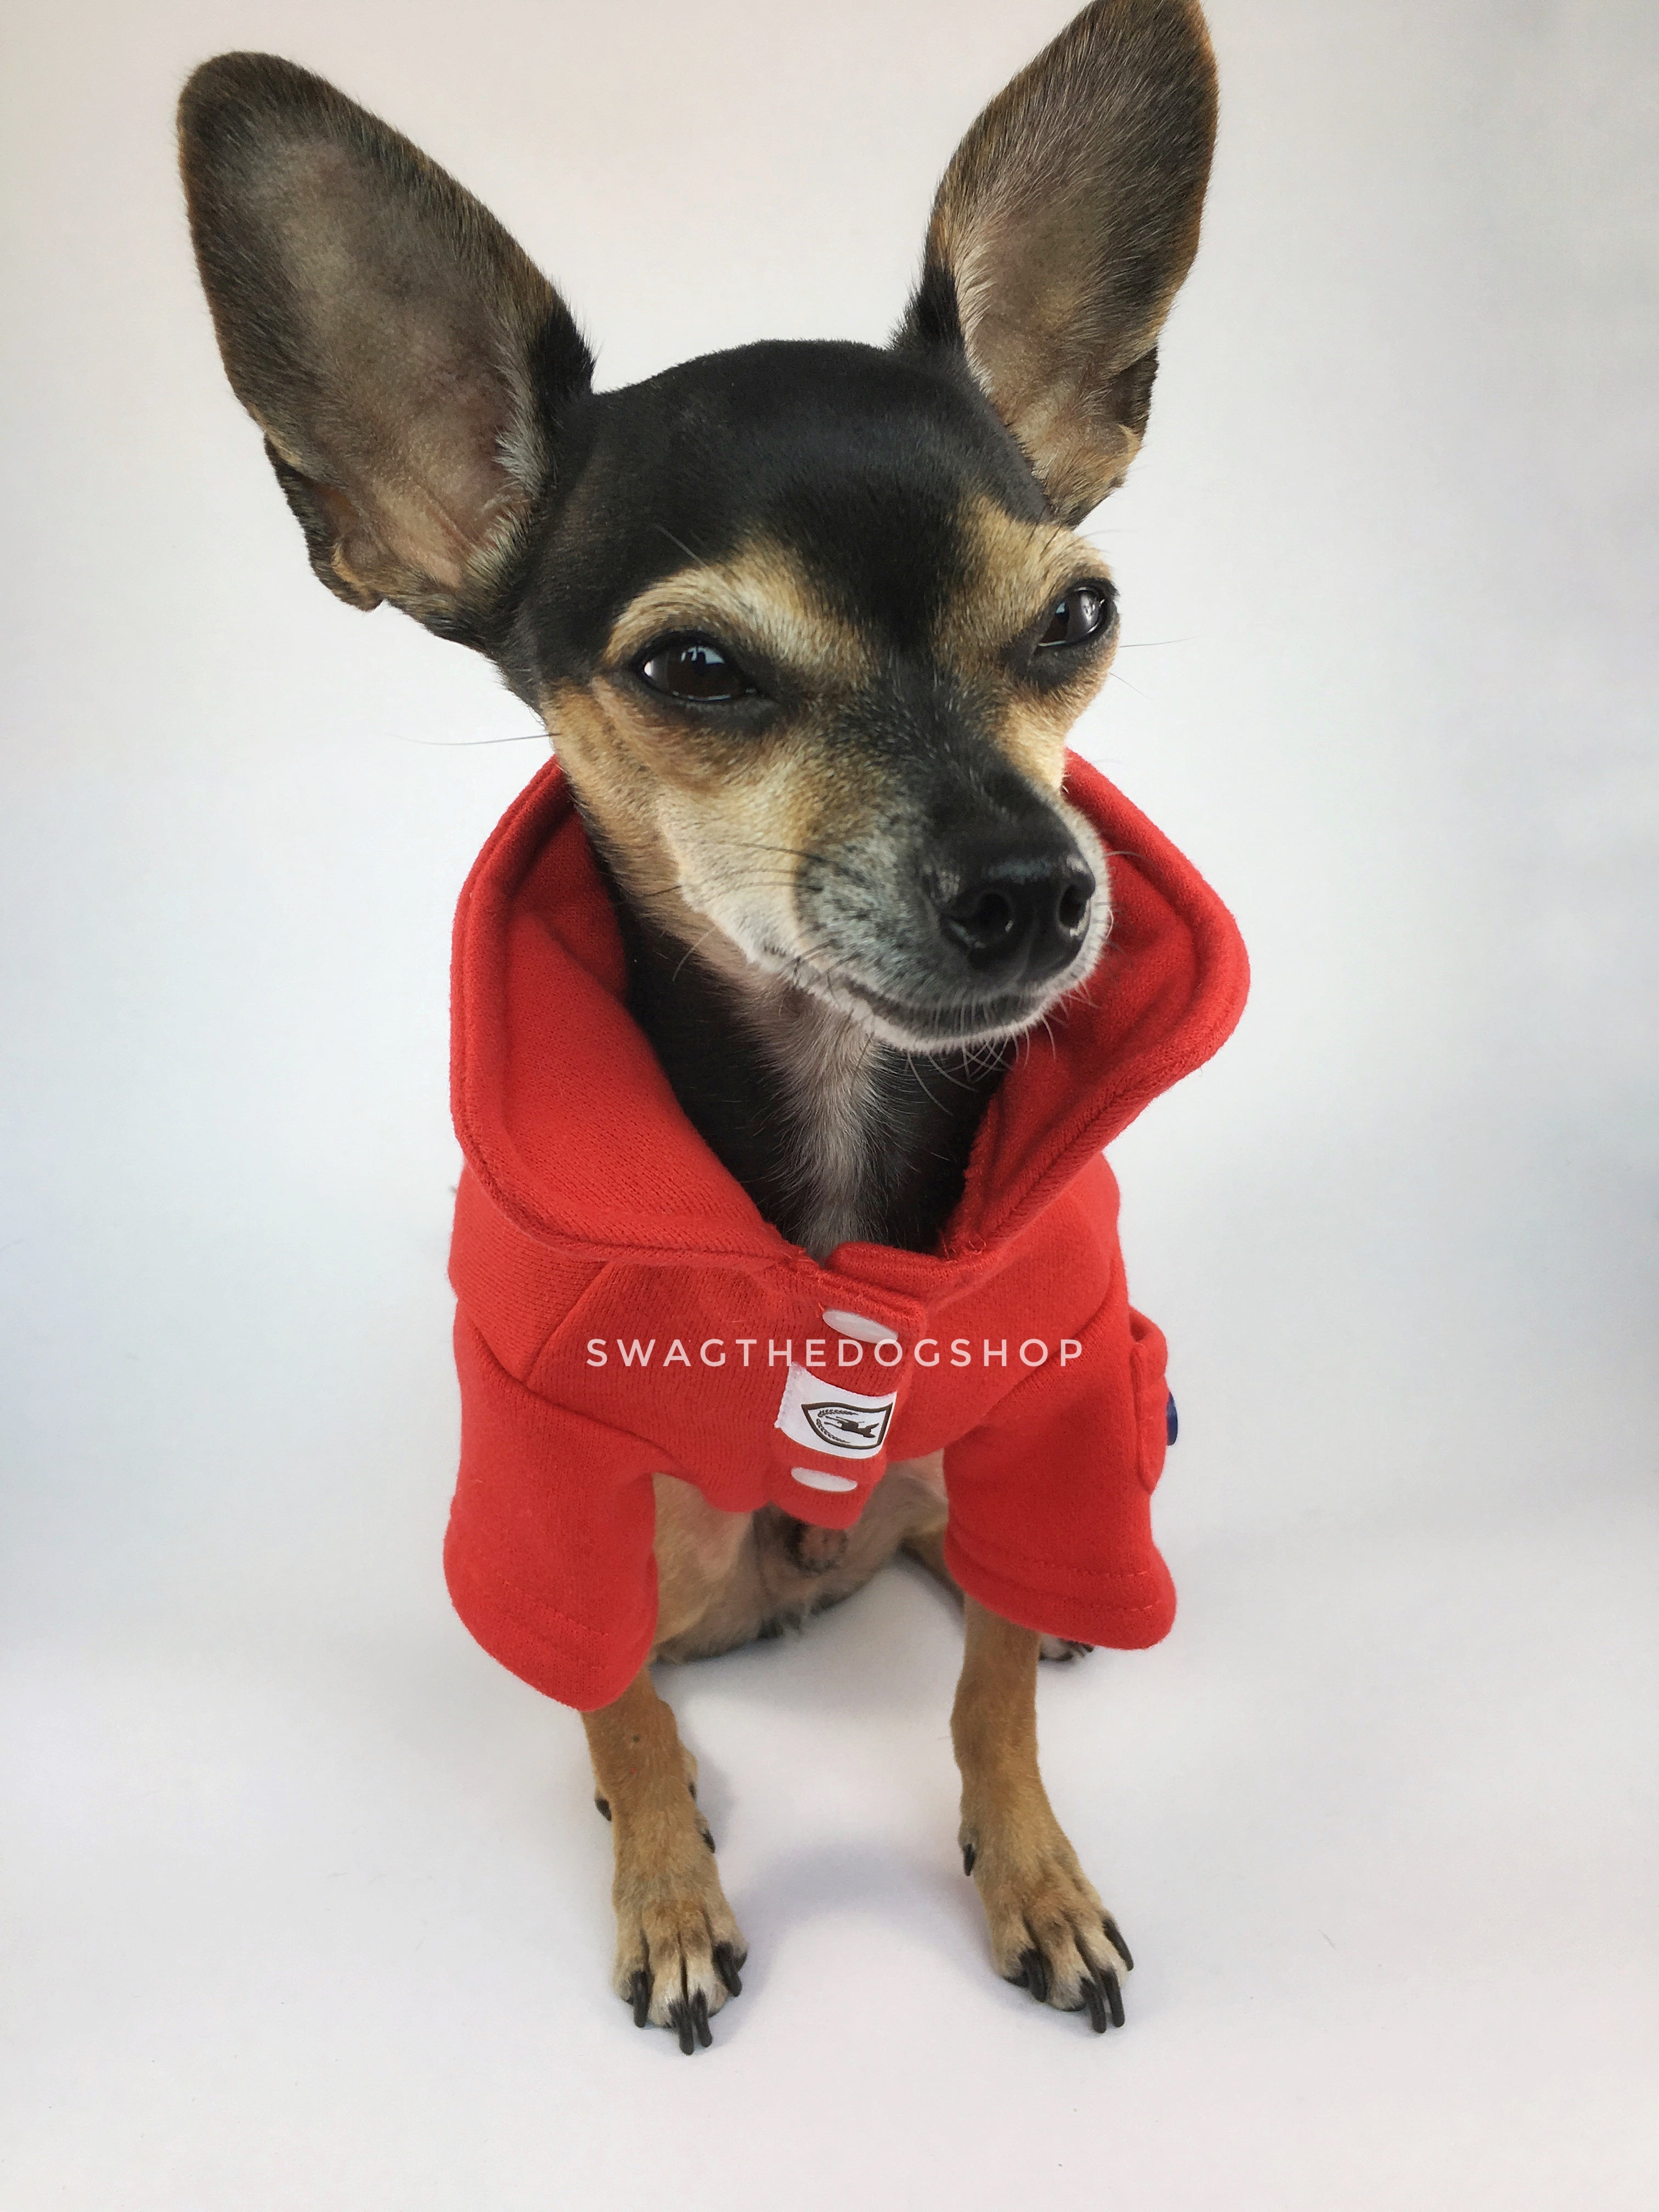 Yachtsman Red Shirt - Full Front View of Cute Chihuahua Dog Wearing Shirt with Collar Up. Red Shirt with Fleece Inside